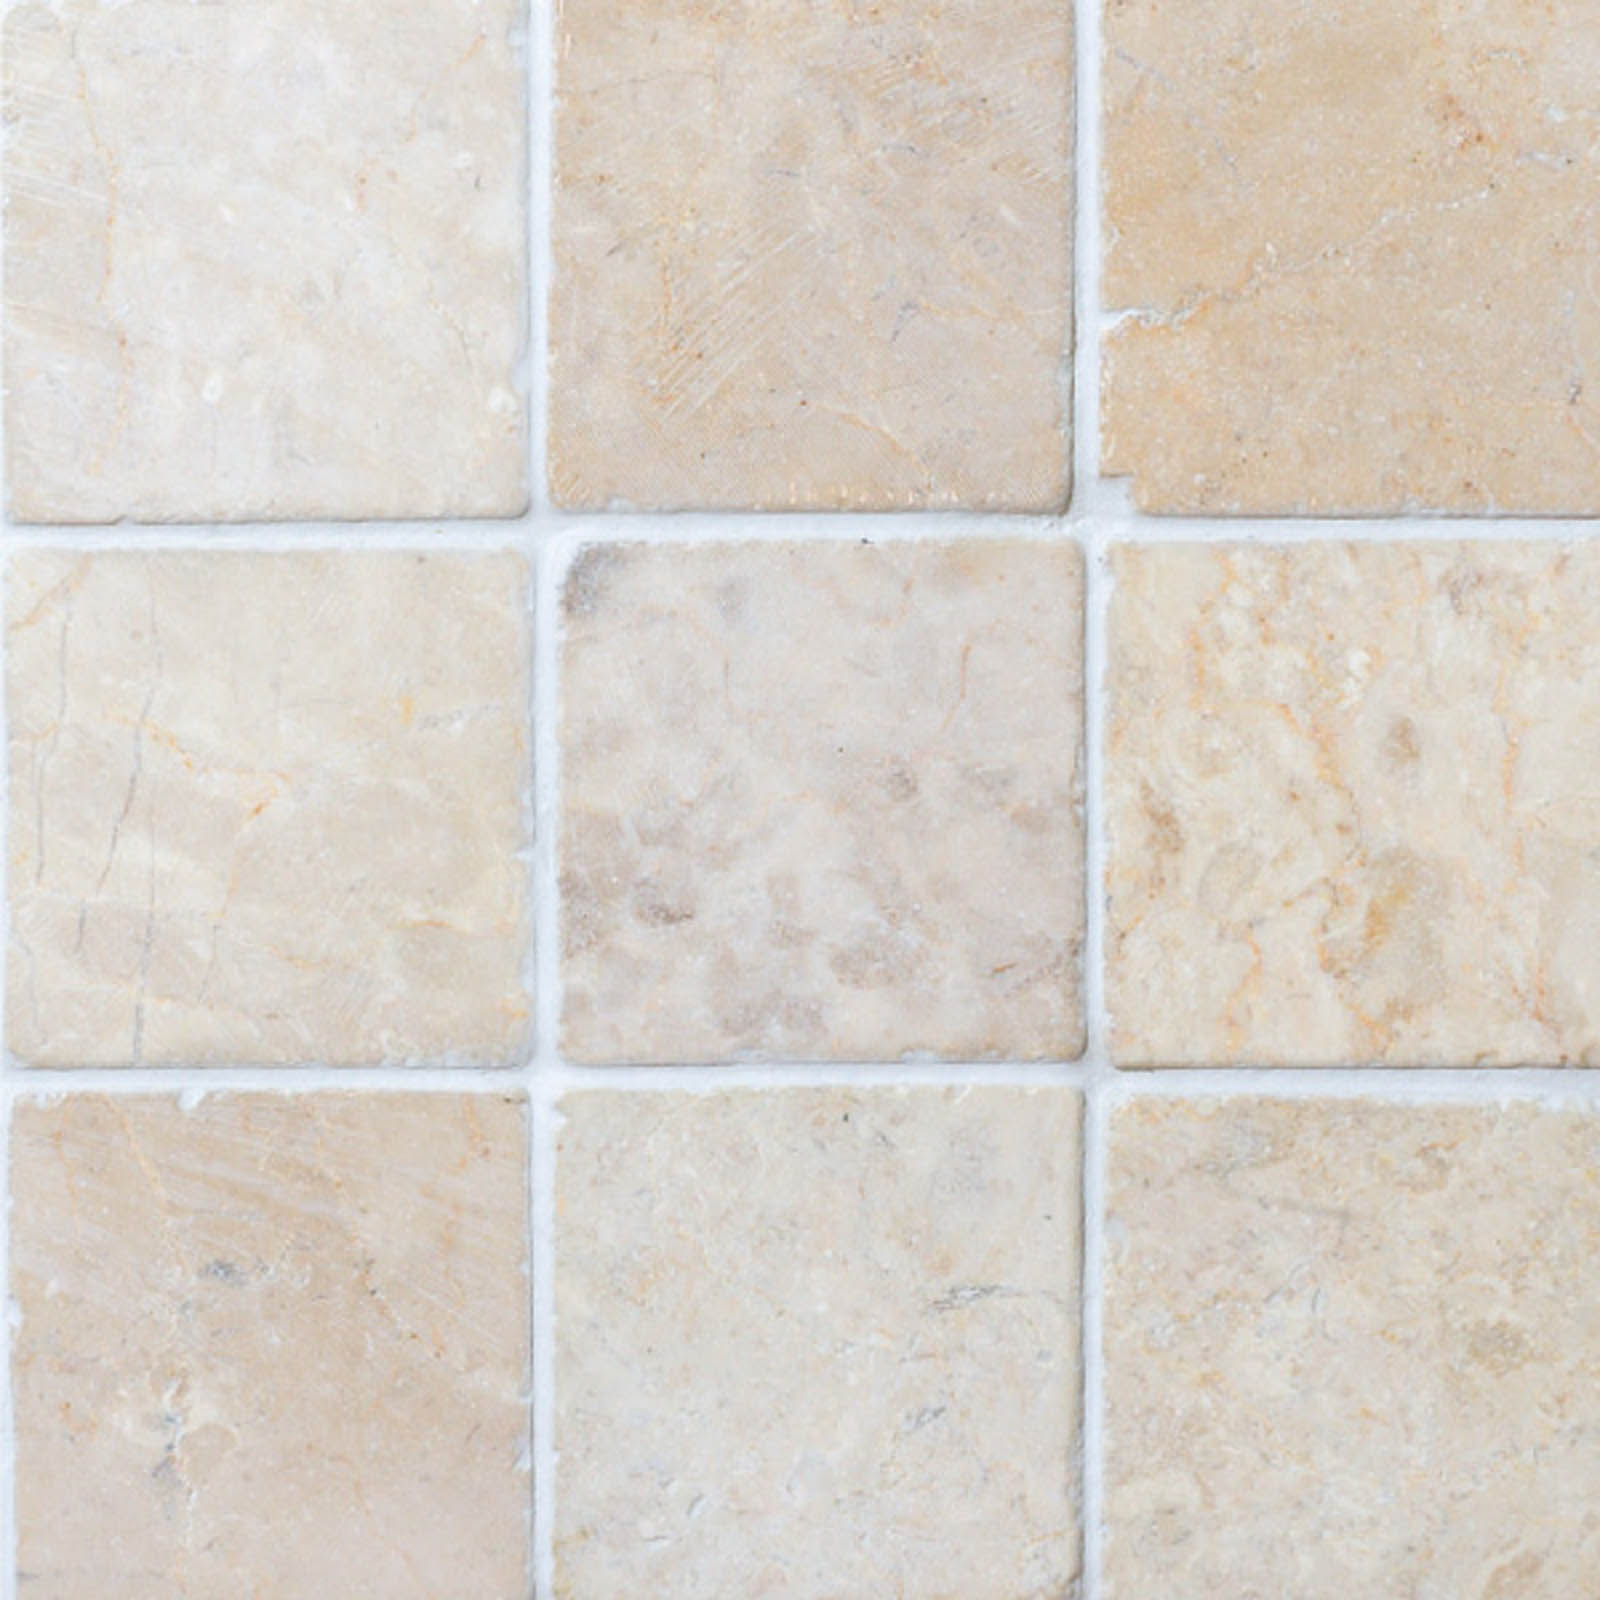 Marmorilaatta Qualitystone Square White 100 x 100 mm